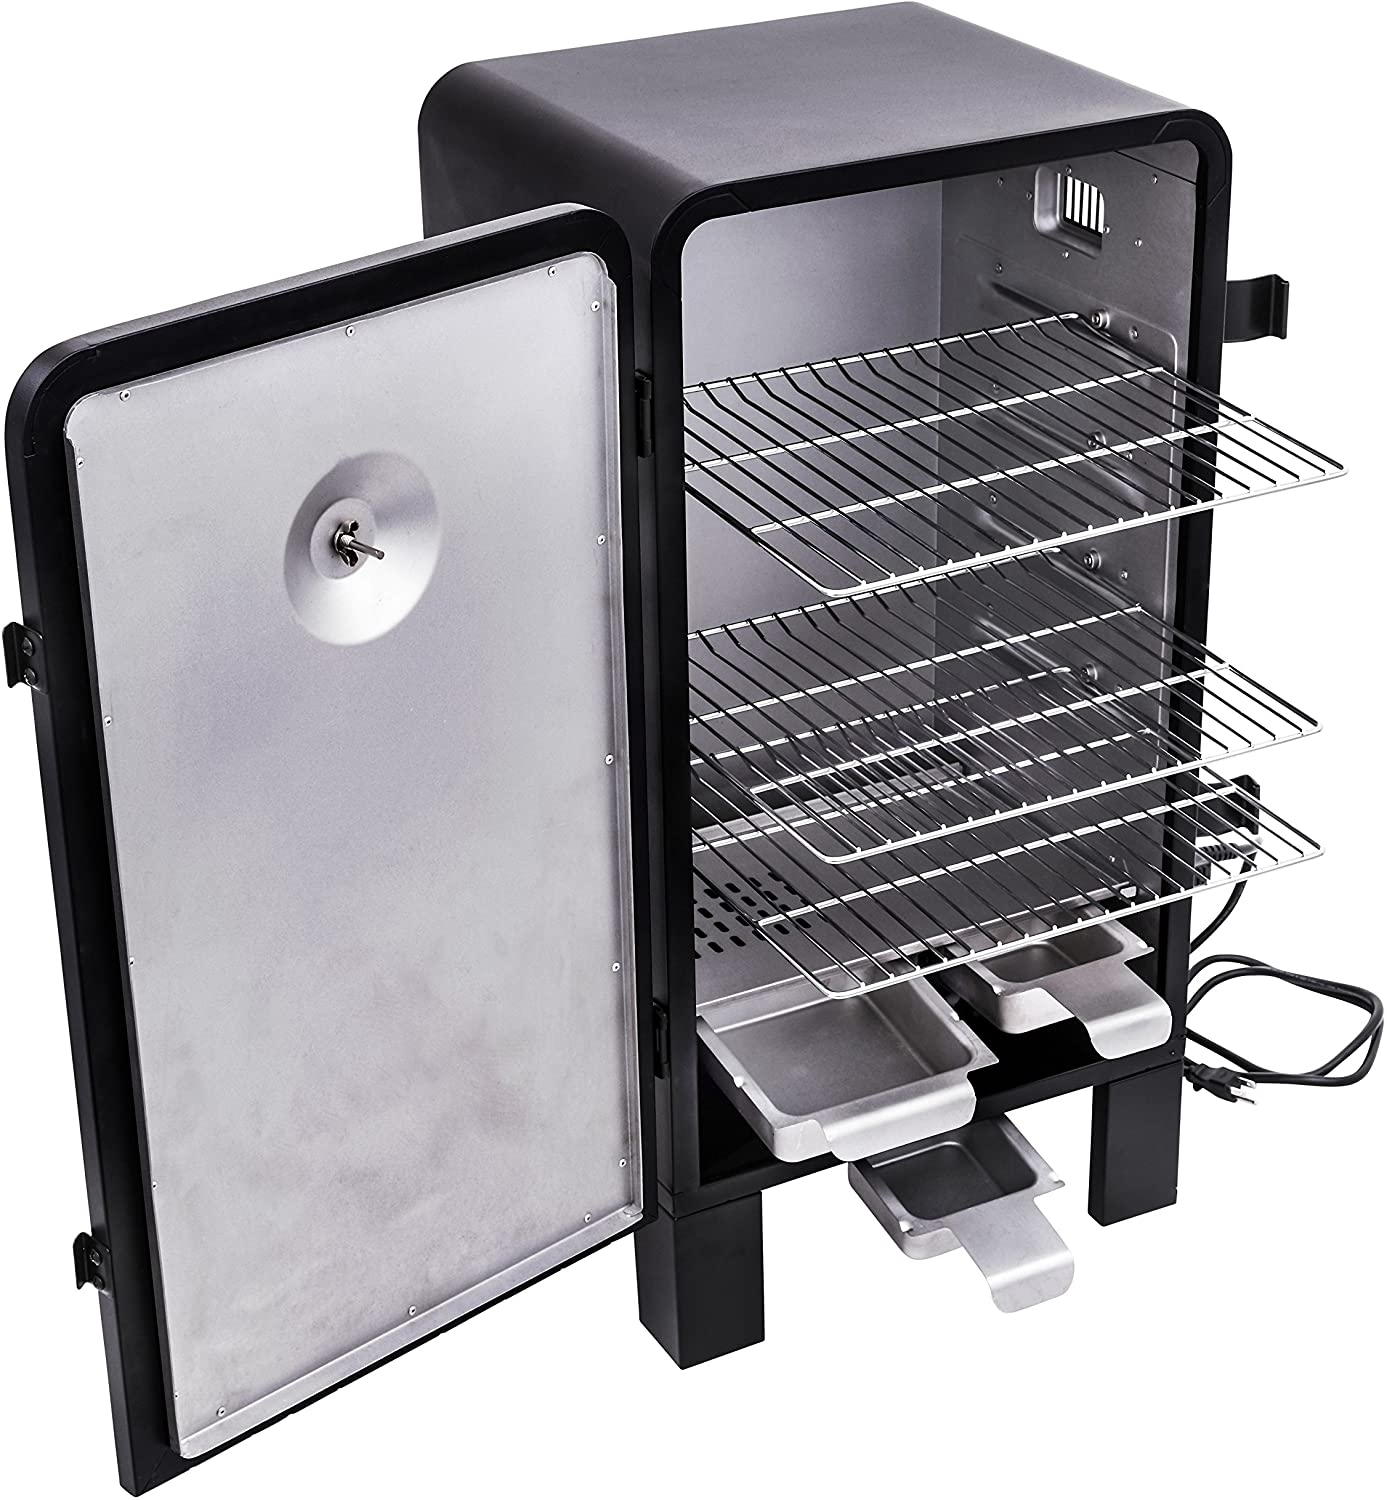 Char-Broil Analog Electric Smoker open